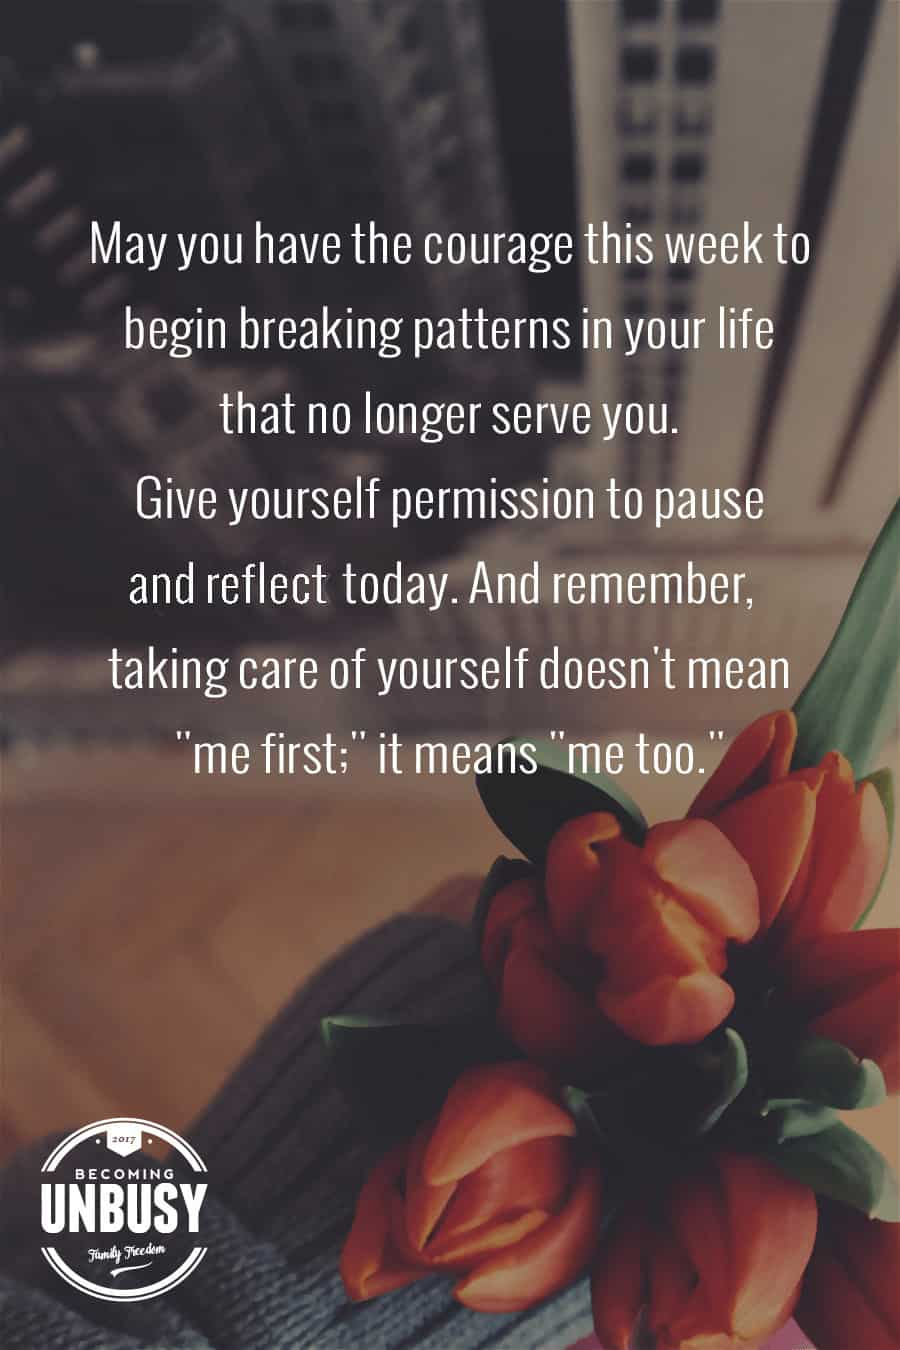 May you have the courage this week to begin breaking patterns in your life that no longer serve you. Give yourself permission to pause and reflect today. And remember, taking care of yourself doesn't mean me first; it means me too. -- 10 inspirational quotes about life that will help you focus on what's important #quotes #lifequotes #inspirationalquotes *Loving this collection of life quotes!